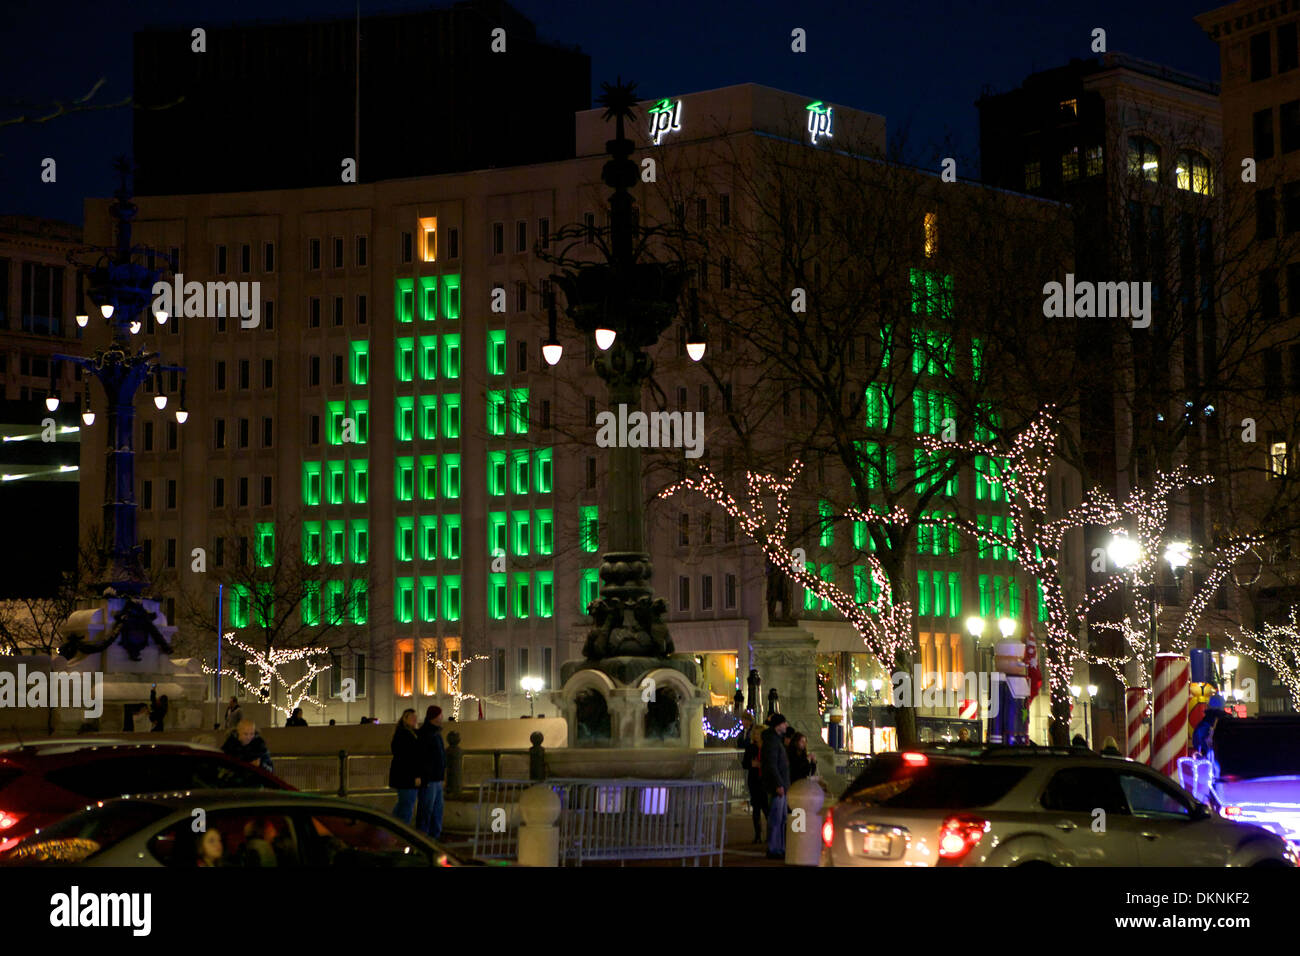 The Soldier And Sailor Monument In Downtown Indianapolis, Indiana Dressed  In Christmas Lights For The Holiday Season.